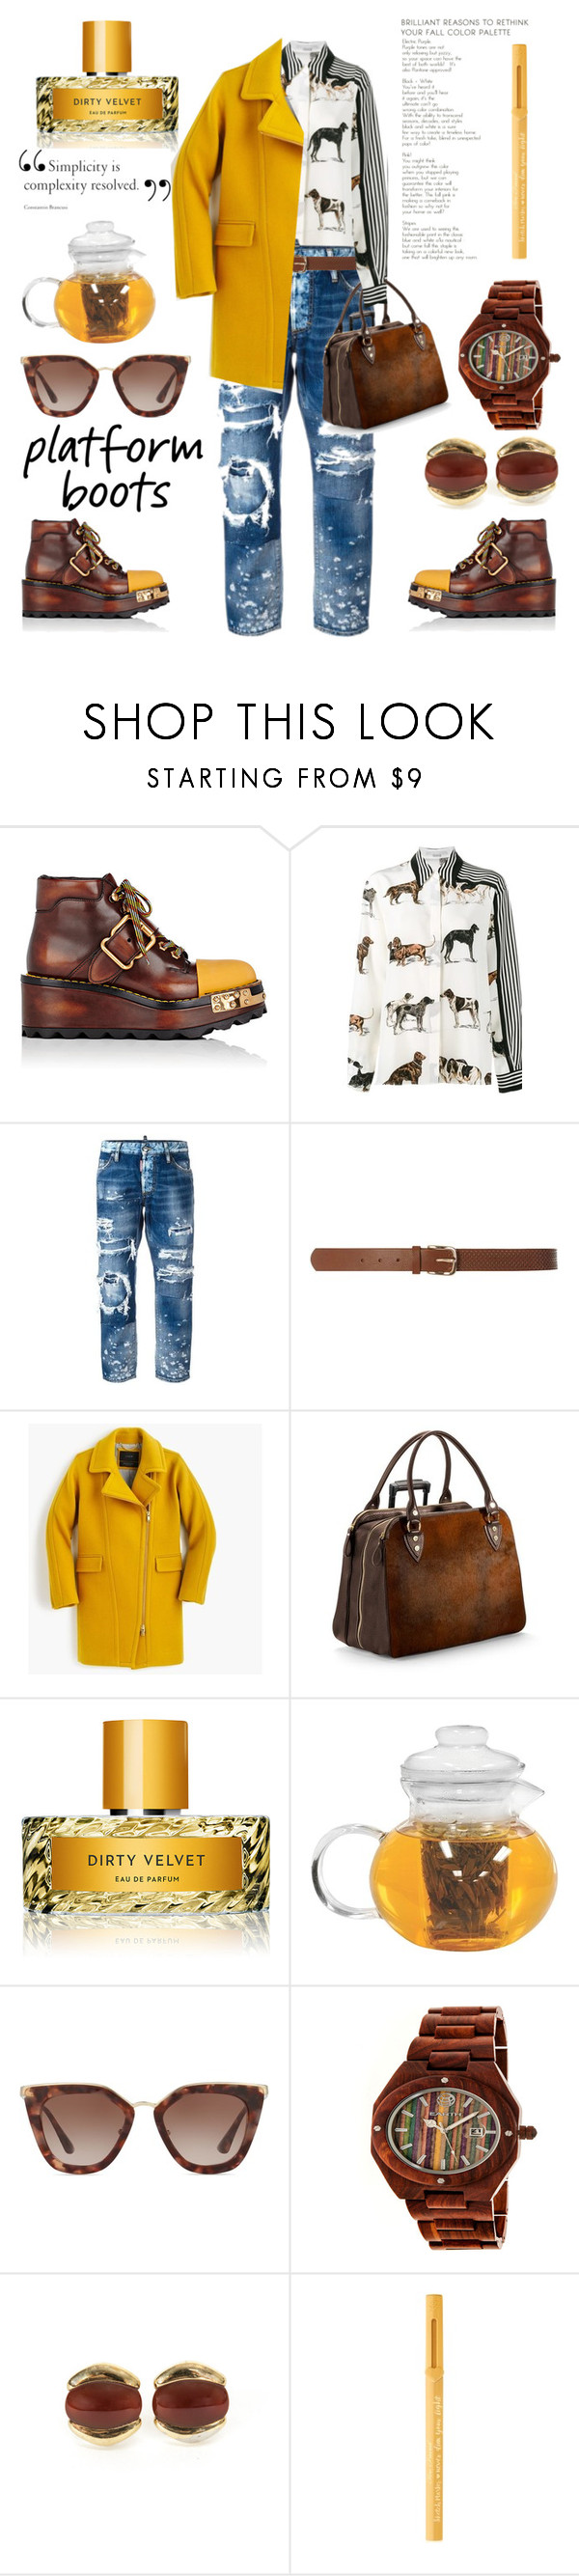 """Platform #500"" by meryflower ❤ liked on Polyvore featuring Prada, STELLA McCARTNEY, Dsquared2, Dorothy Perkins, J.Crew, Aspinal of London, Vilhelm Parfumerie, Primula, Earth and Kai-Yin Lo"